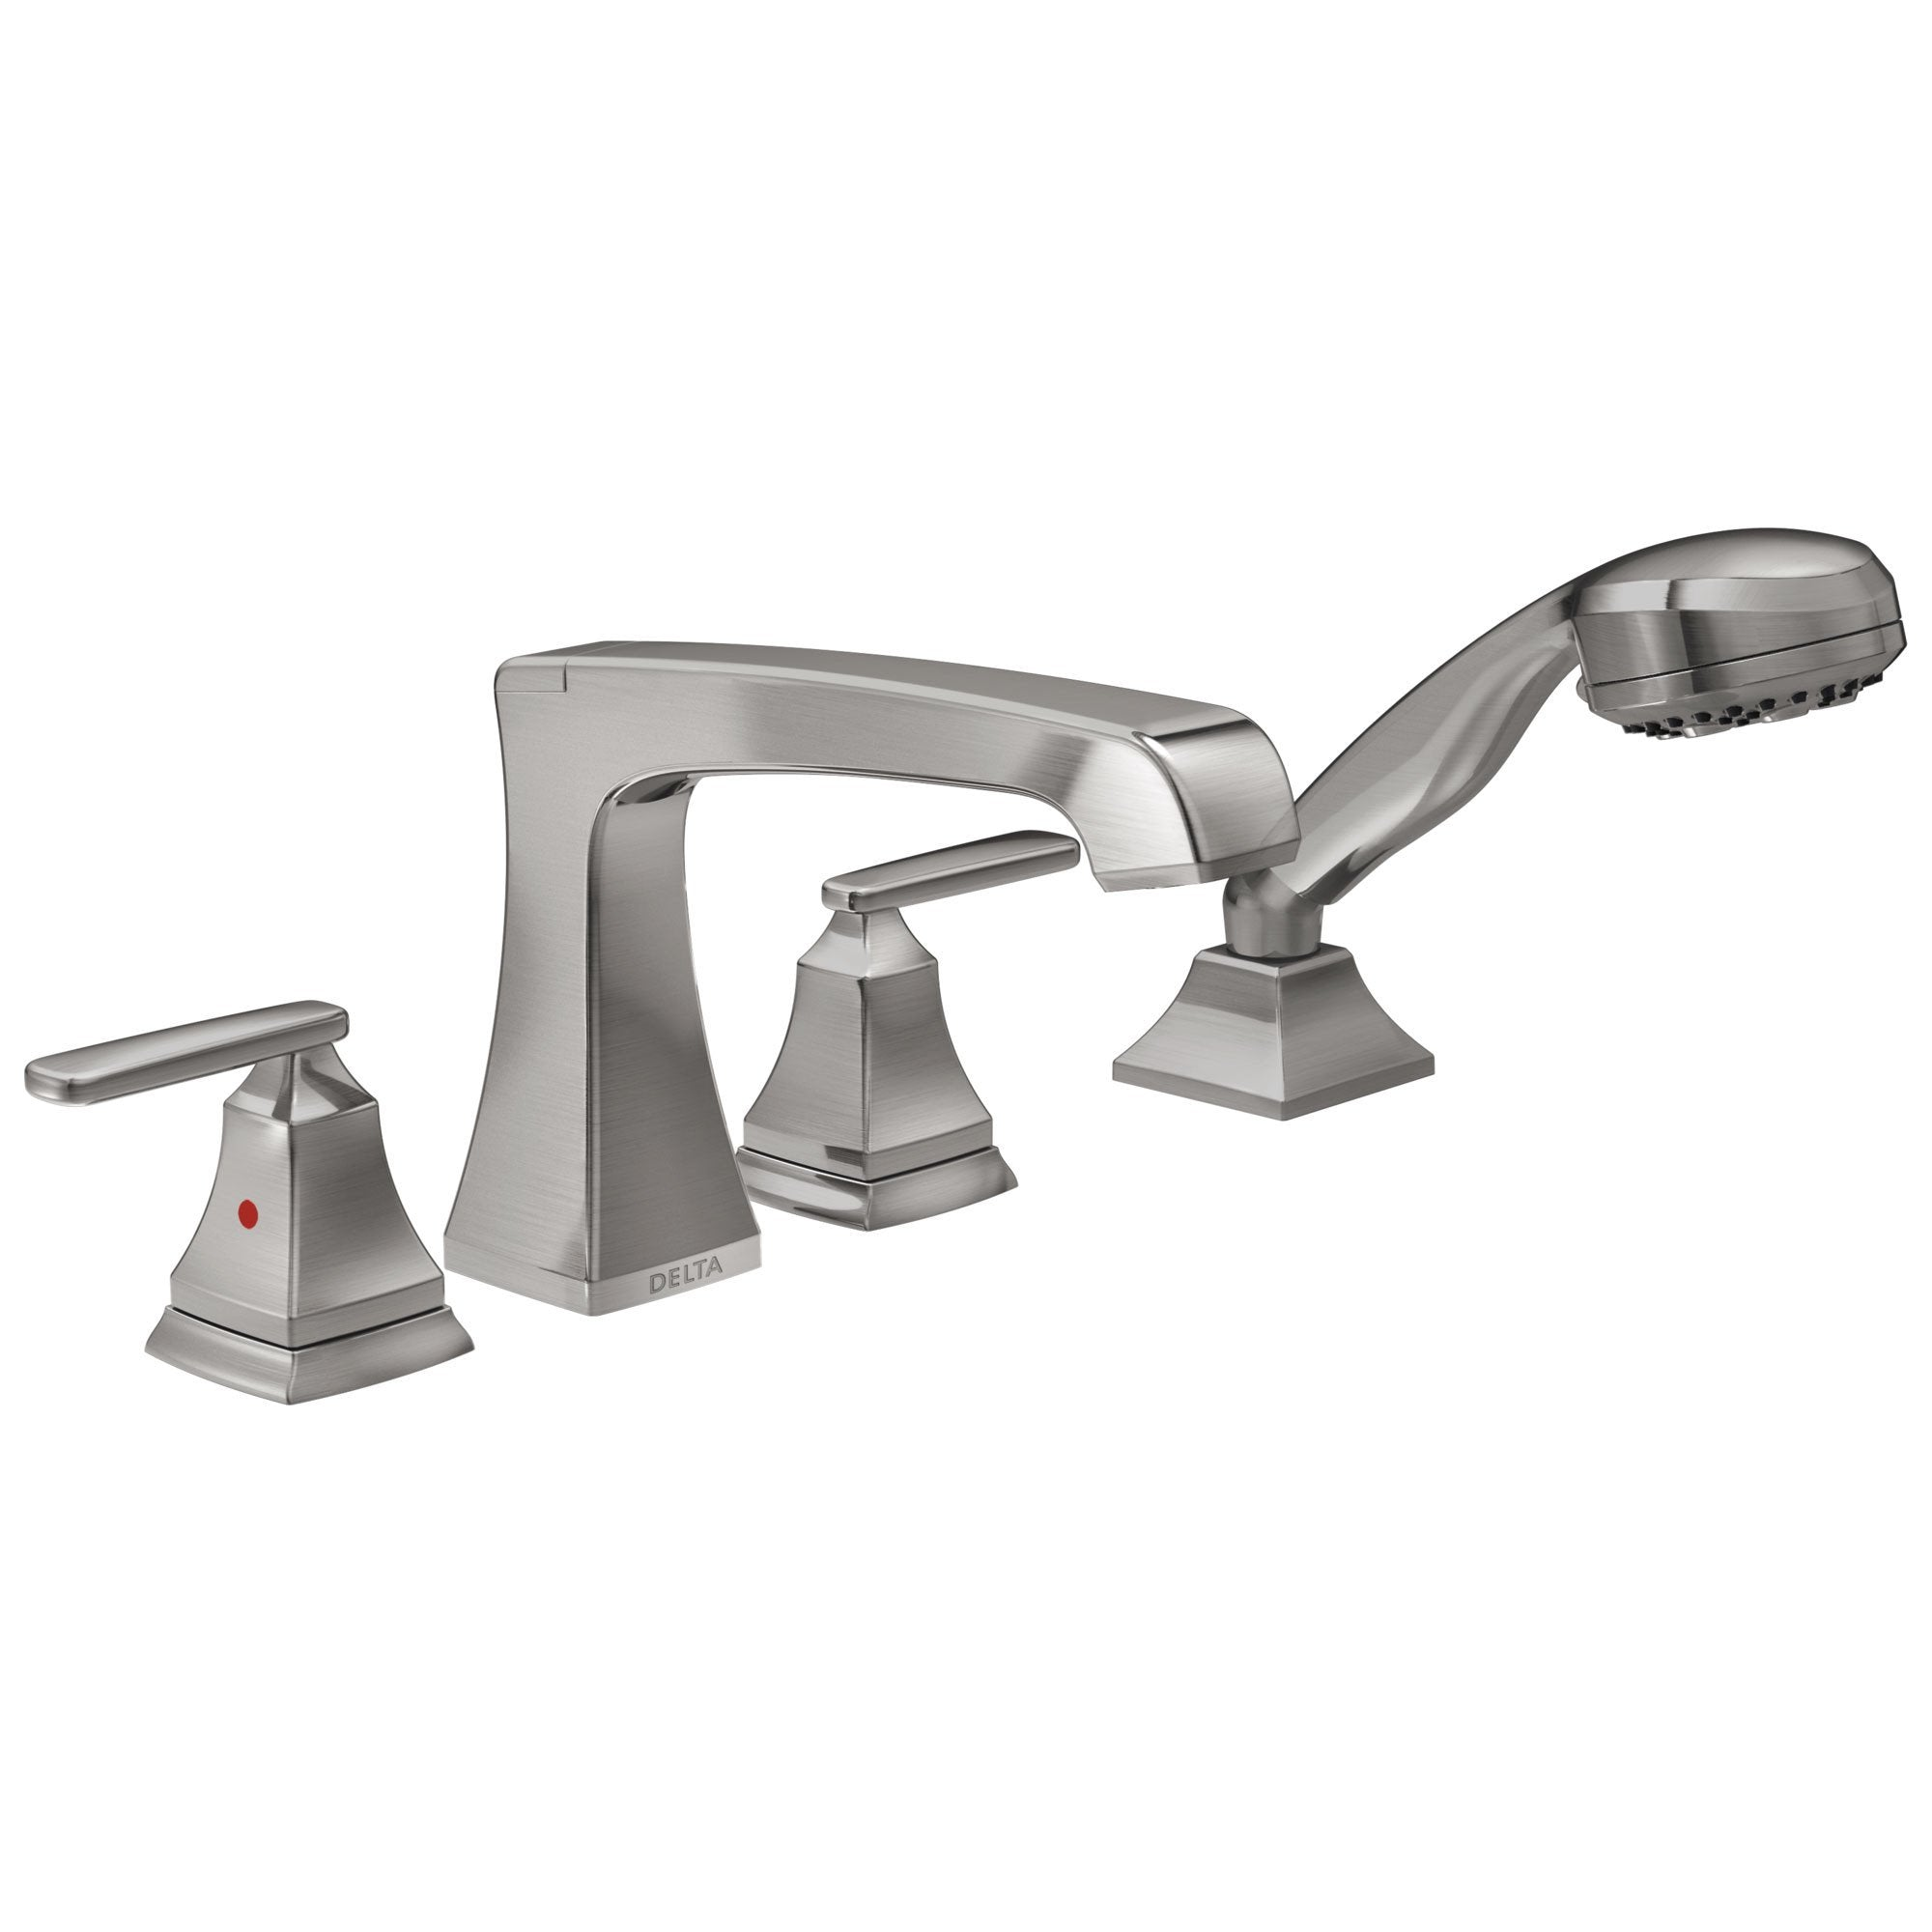 Delta Ashlyn Collection Stainless Steel Finish High Flow Roman Bath Tub Filler Faucet Trim with Hand Shower Sprayer (Requires Rough-in Valve) DT4764SS